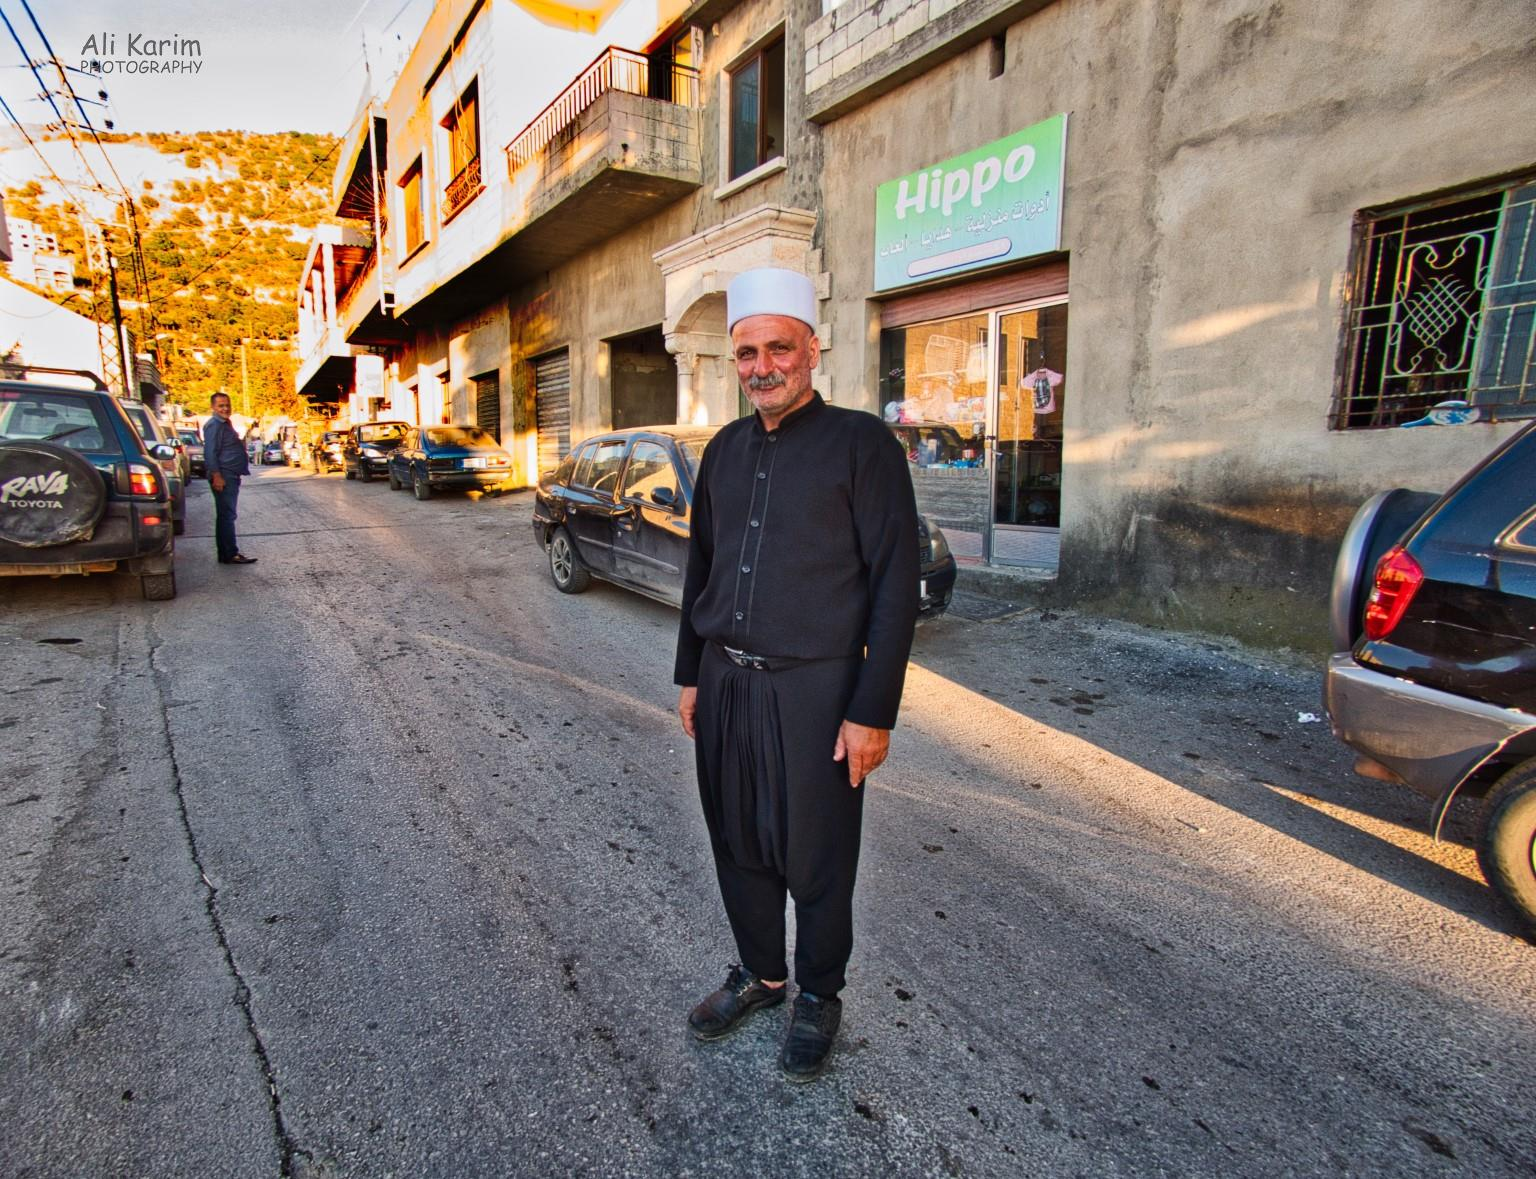 Bekaa Valley Winery, Chouf Mountains & the Druze Friendly gentleman, traditionally dressed in black harem pants, shirt and white hat; who guided us away from the Druze mosque